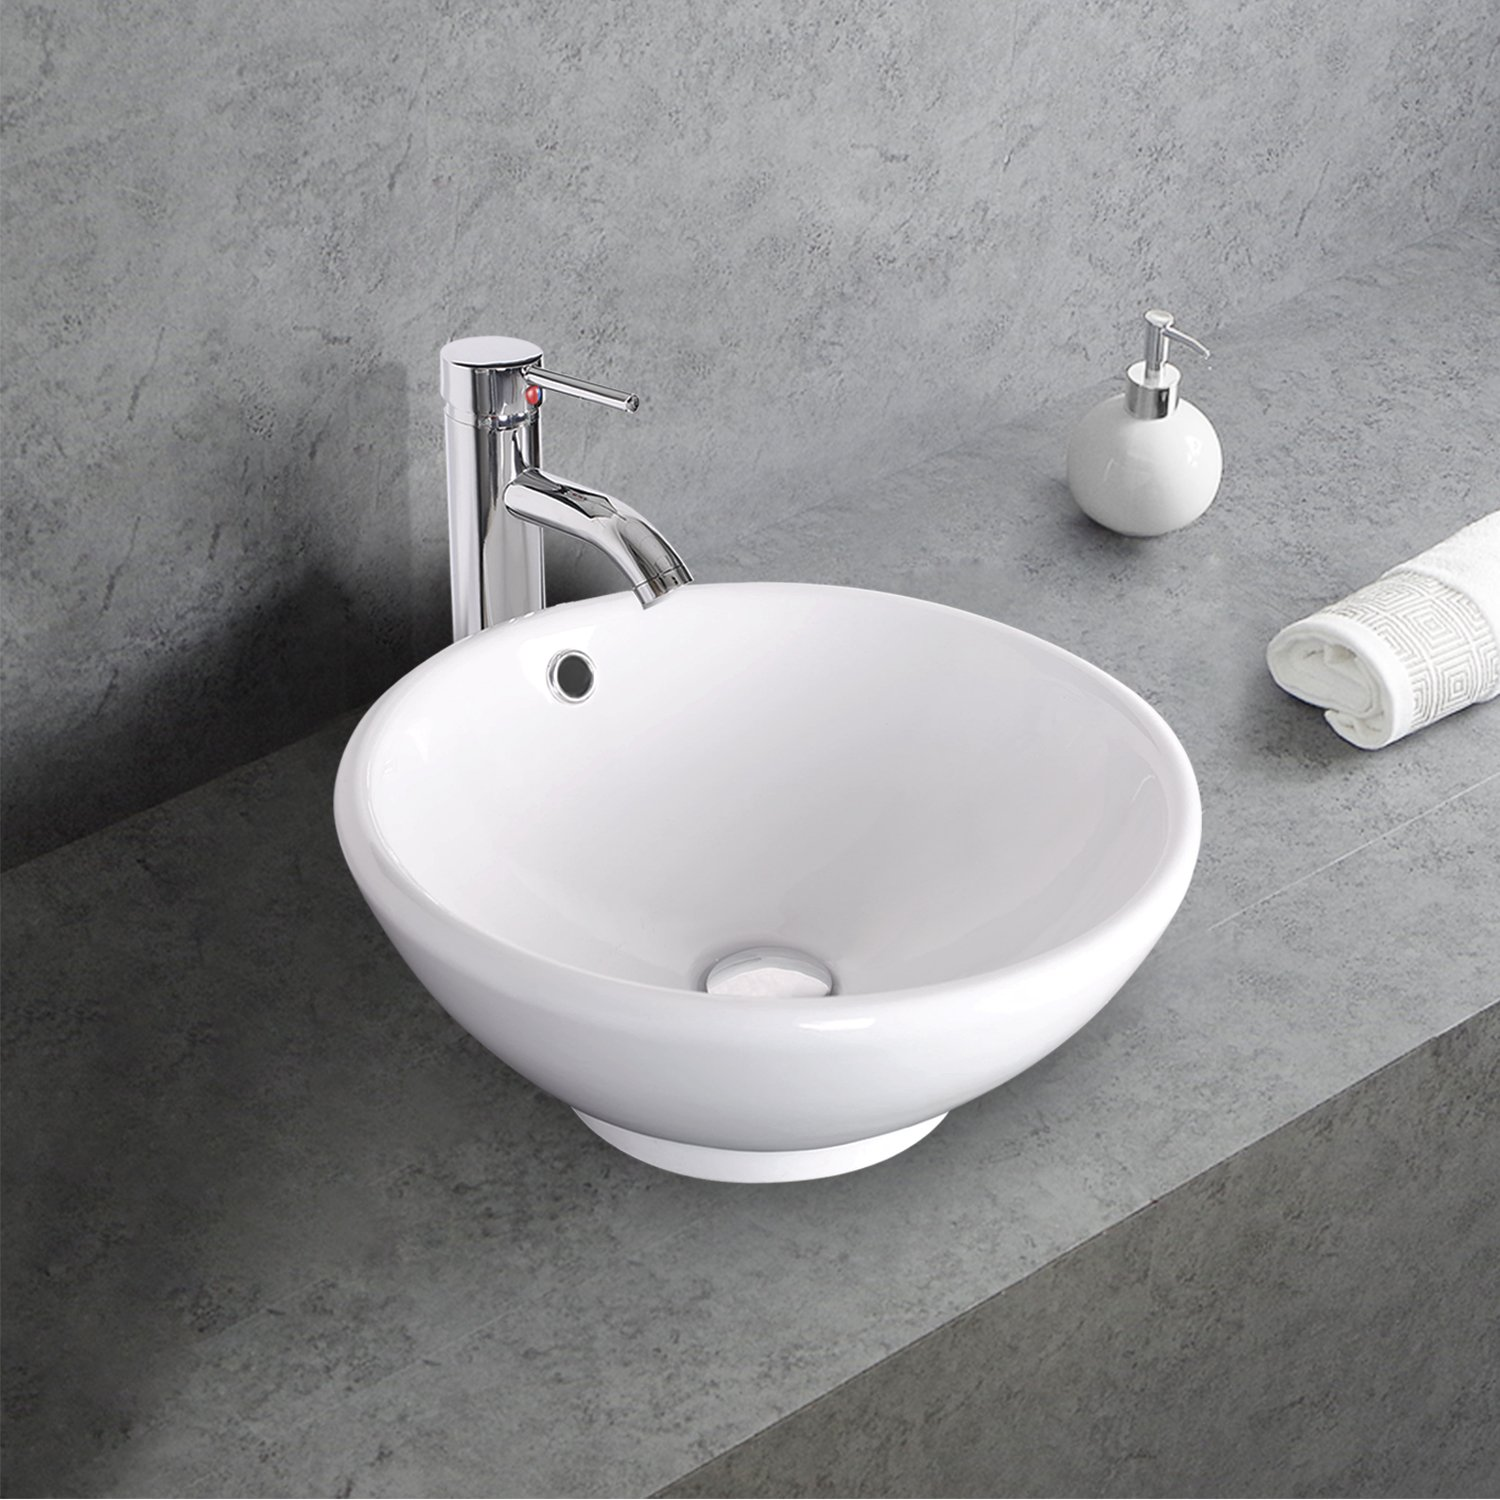 1.5 GPM Counter Top White Square Porcelain Ceramic Sink Bowl White Square Bathroom Vessel Sink Combo with Chrome Solid Brass Faucet and Pop Up Drain for Bath Eclife